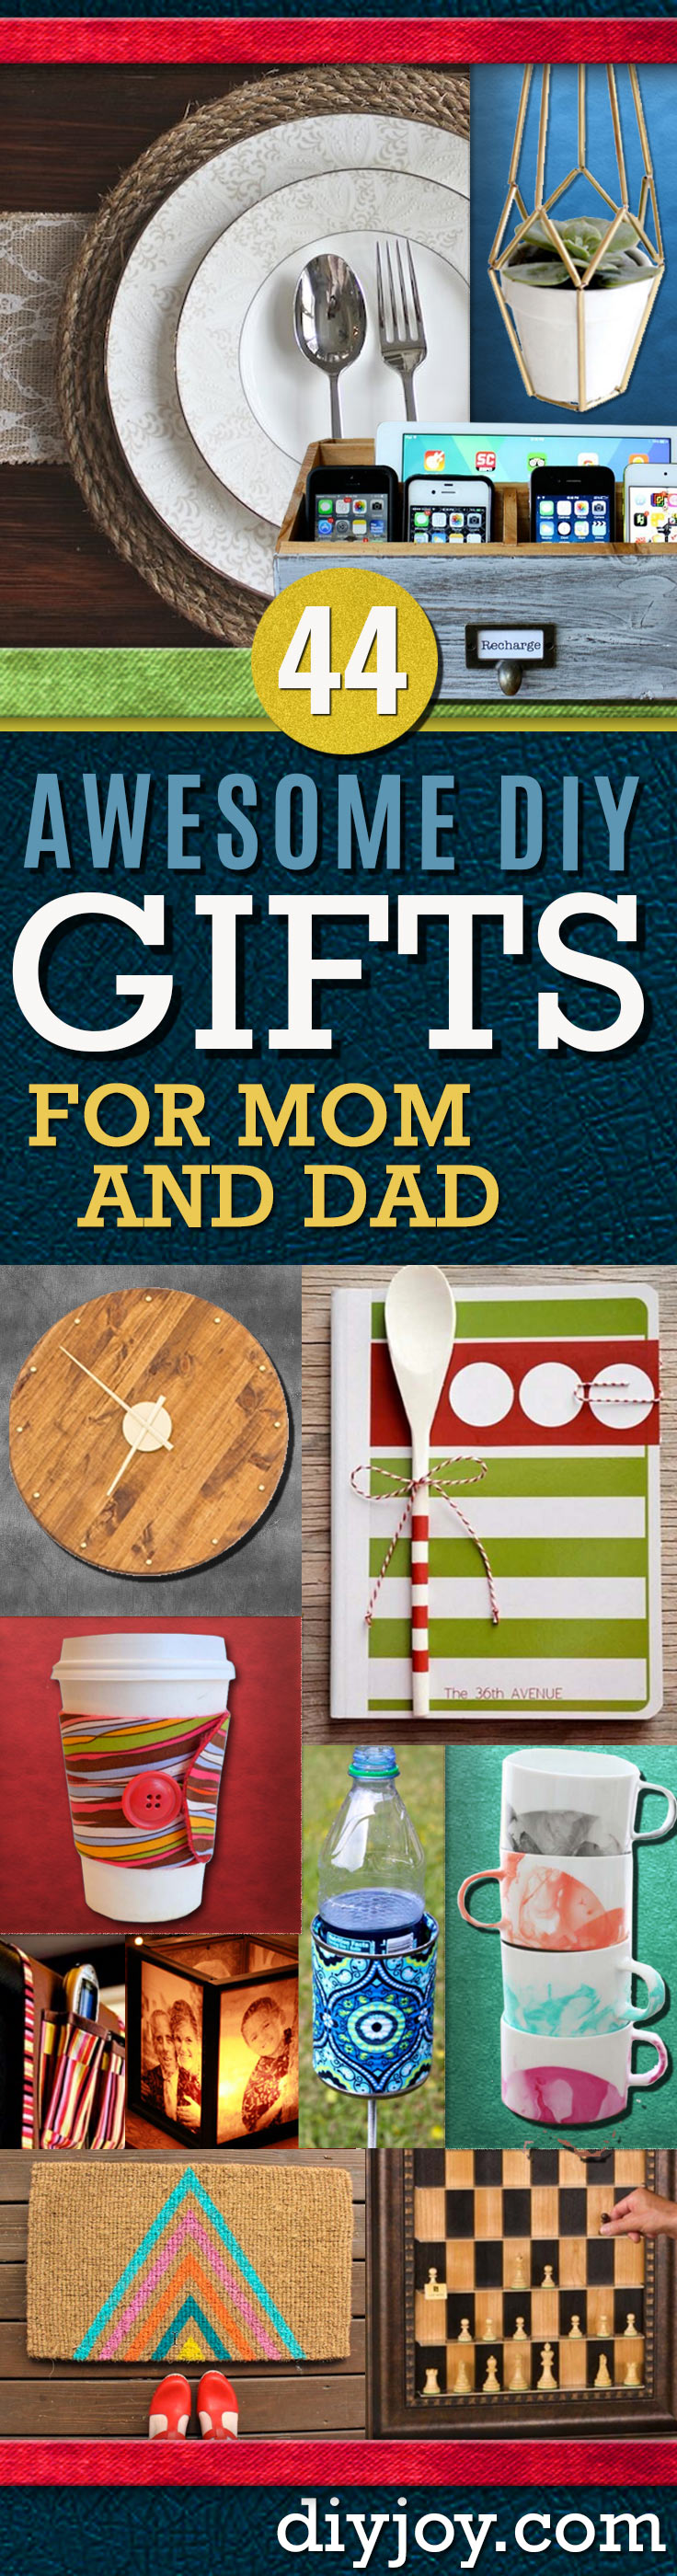 Awesome diy gift ideas mom and dad will love diy gifts for mom and dad homemade christmas gift ideas for your parents cool solutioingenieria Image collections